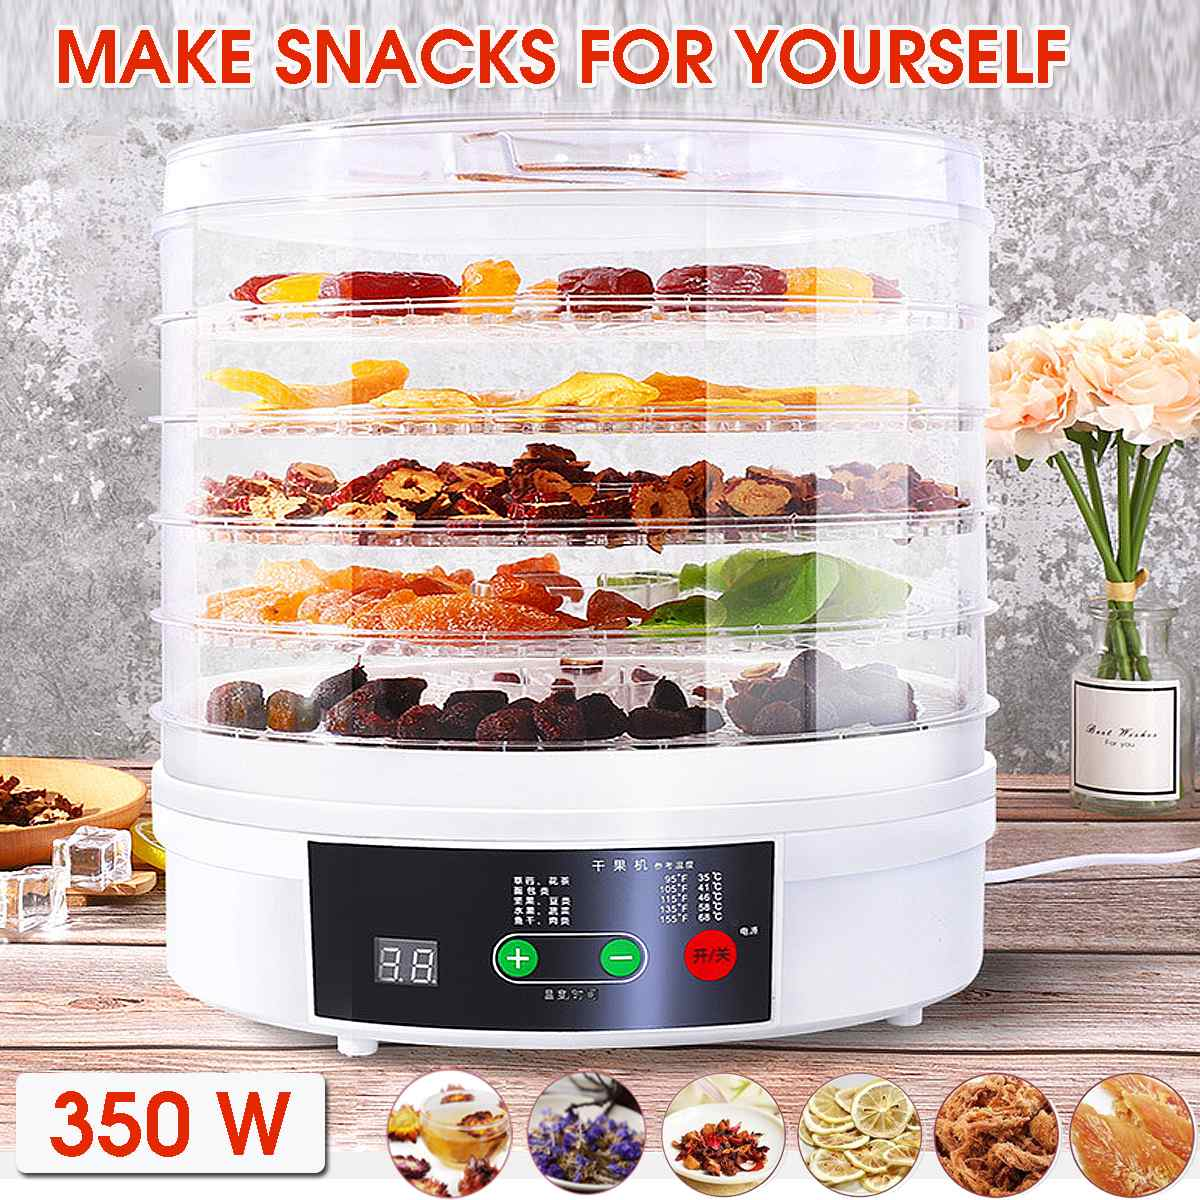 NEW Electric Food Dehydrator for Fruits and Vegetables 350W Temperature Adjustment 5 trays Snacks Air Dryer 110/220V